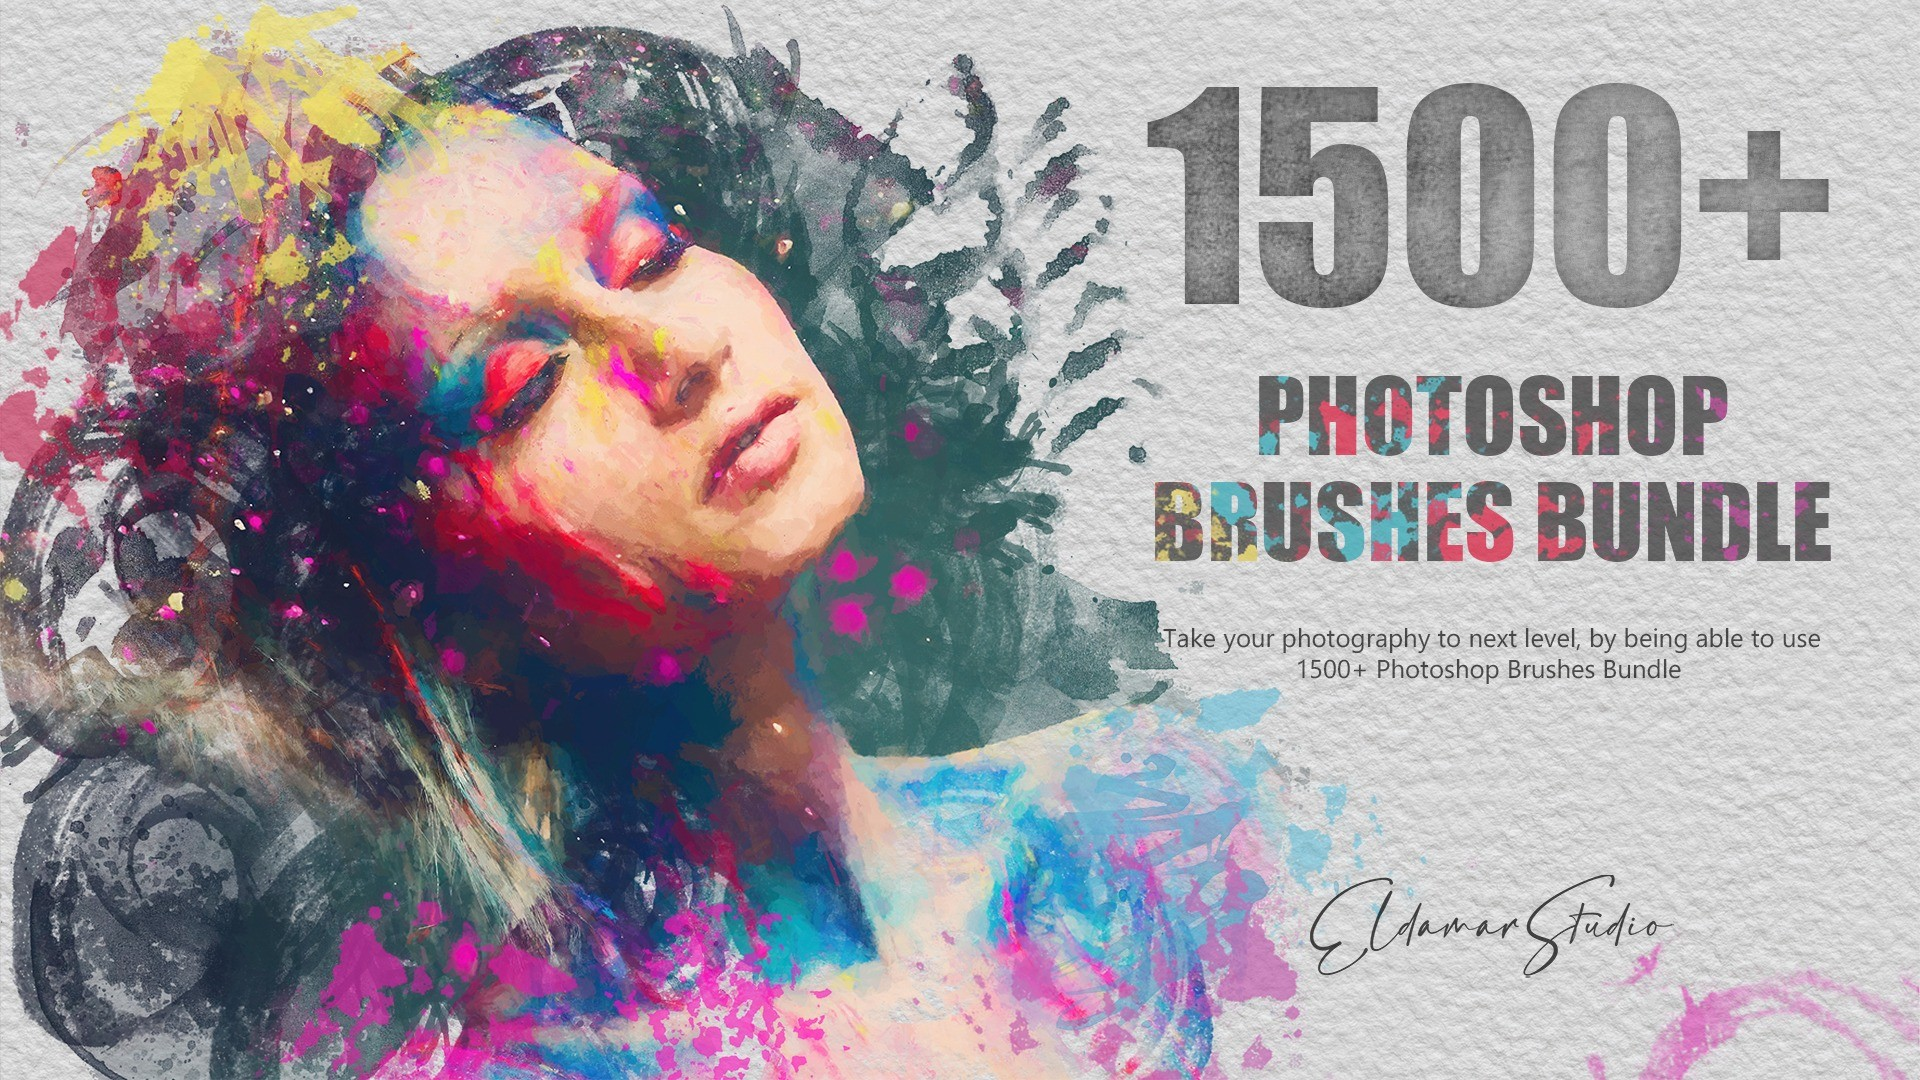 AppSumo Deal for 1500+ Photoshop Brushes Bundle